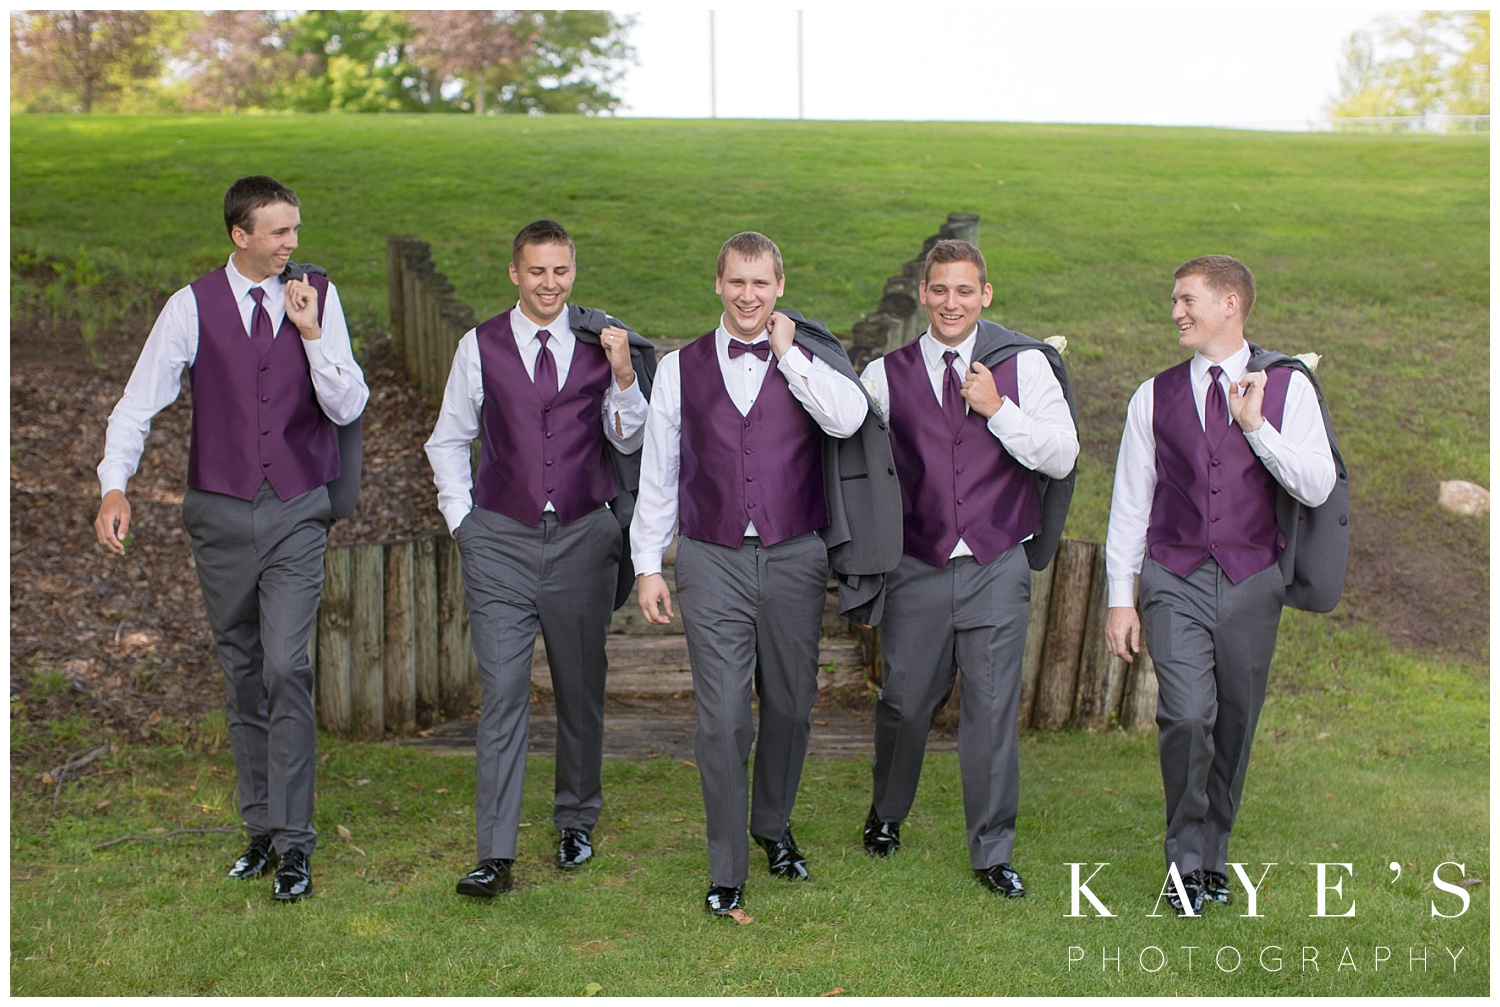 casual photo of groom and groomsmen before wedding ceremony